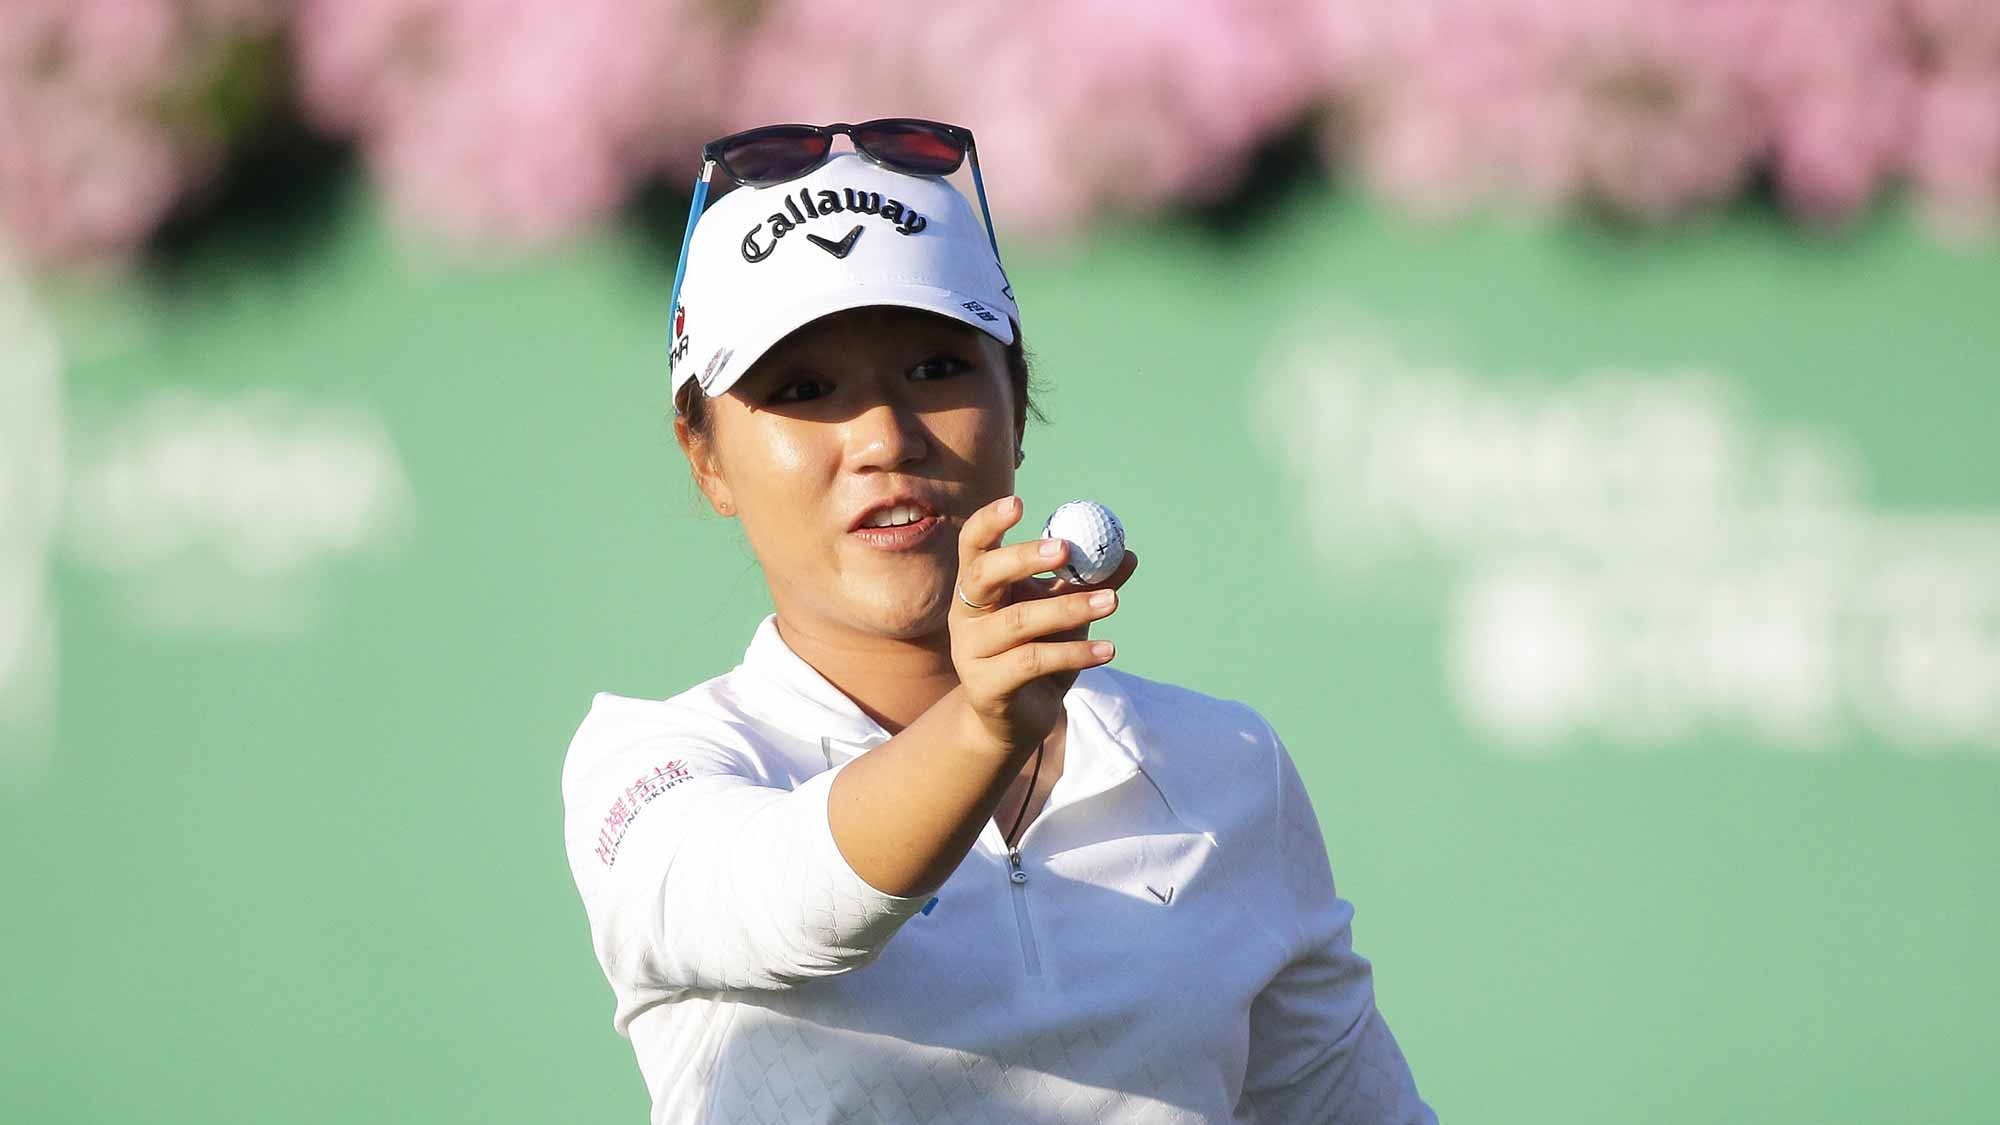 Lydia Ko of New Zealand reacts after a putt on the 18th green during round three of the LPGA KEB Hana Bank